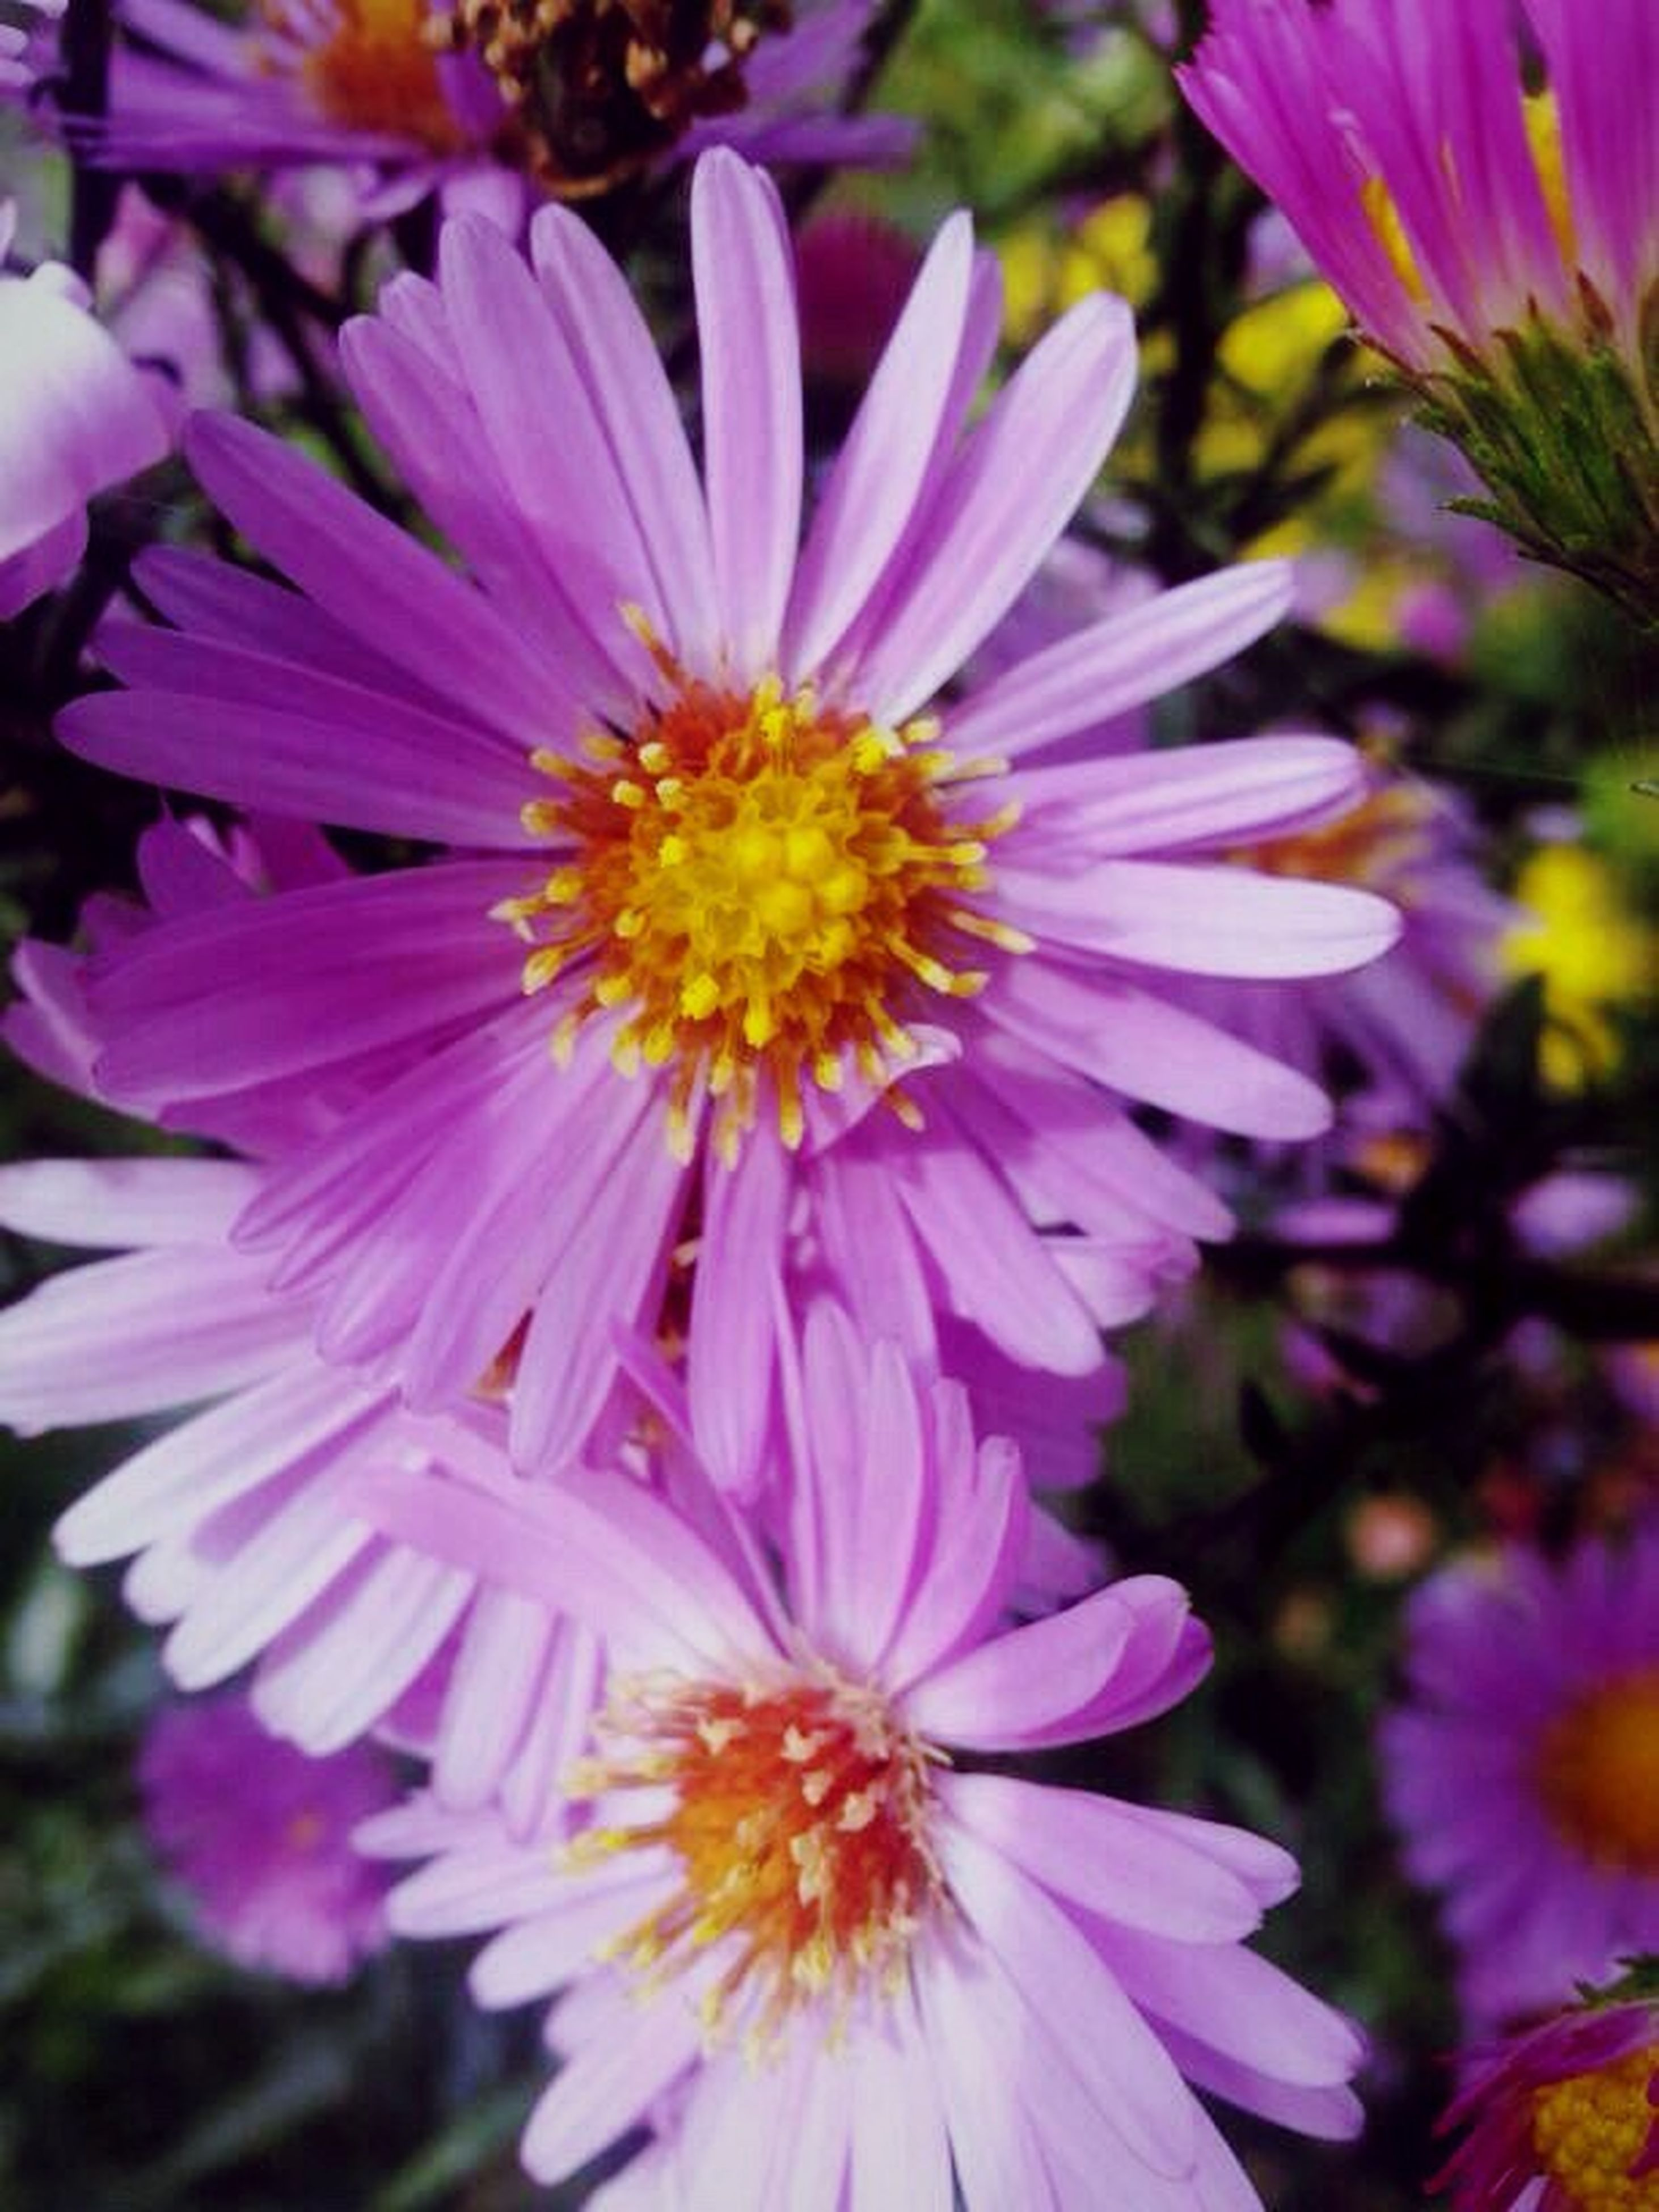 flower, freshness, petal, flower head, fragility, growth, beauty in nature, close-up, pollen, blooming, focus on foreground, nature, pink color, purple, plant, in bloom, day, park - man made space, no people, outdoors